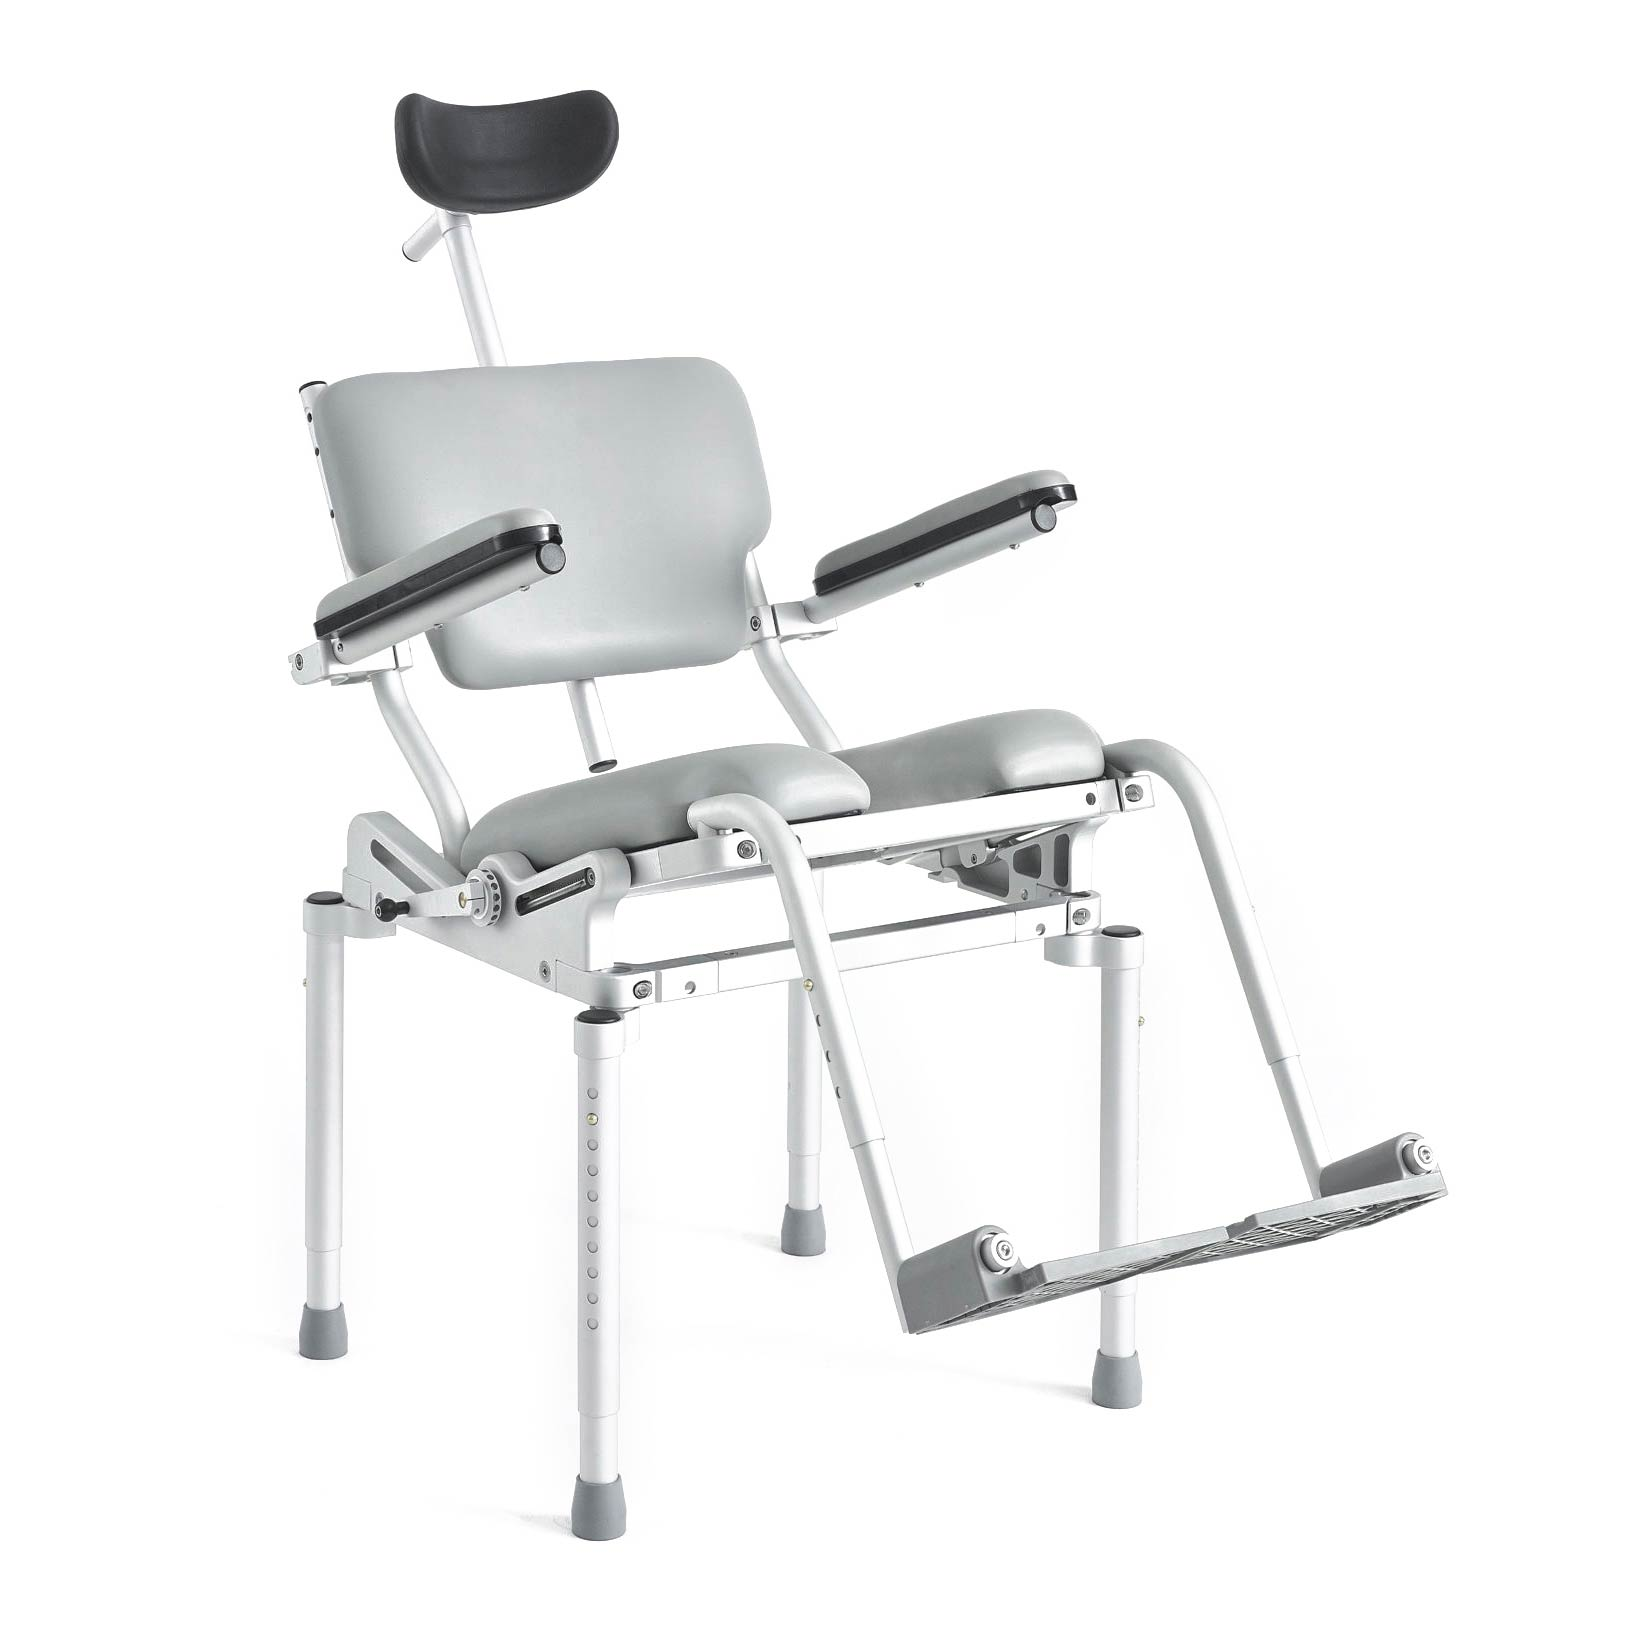 Nuprodx Multichair 3000Tilt Tub And Toilet Chair | Medicaleshop